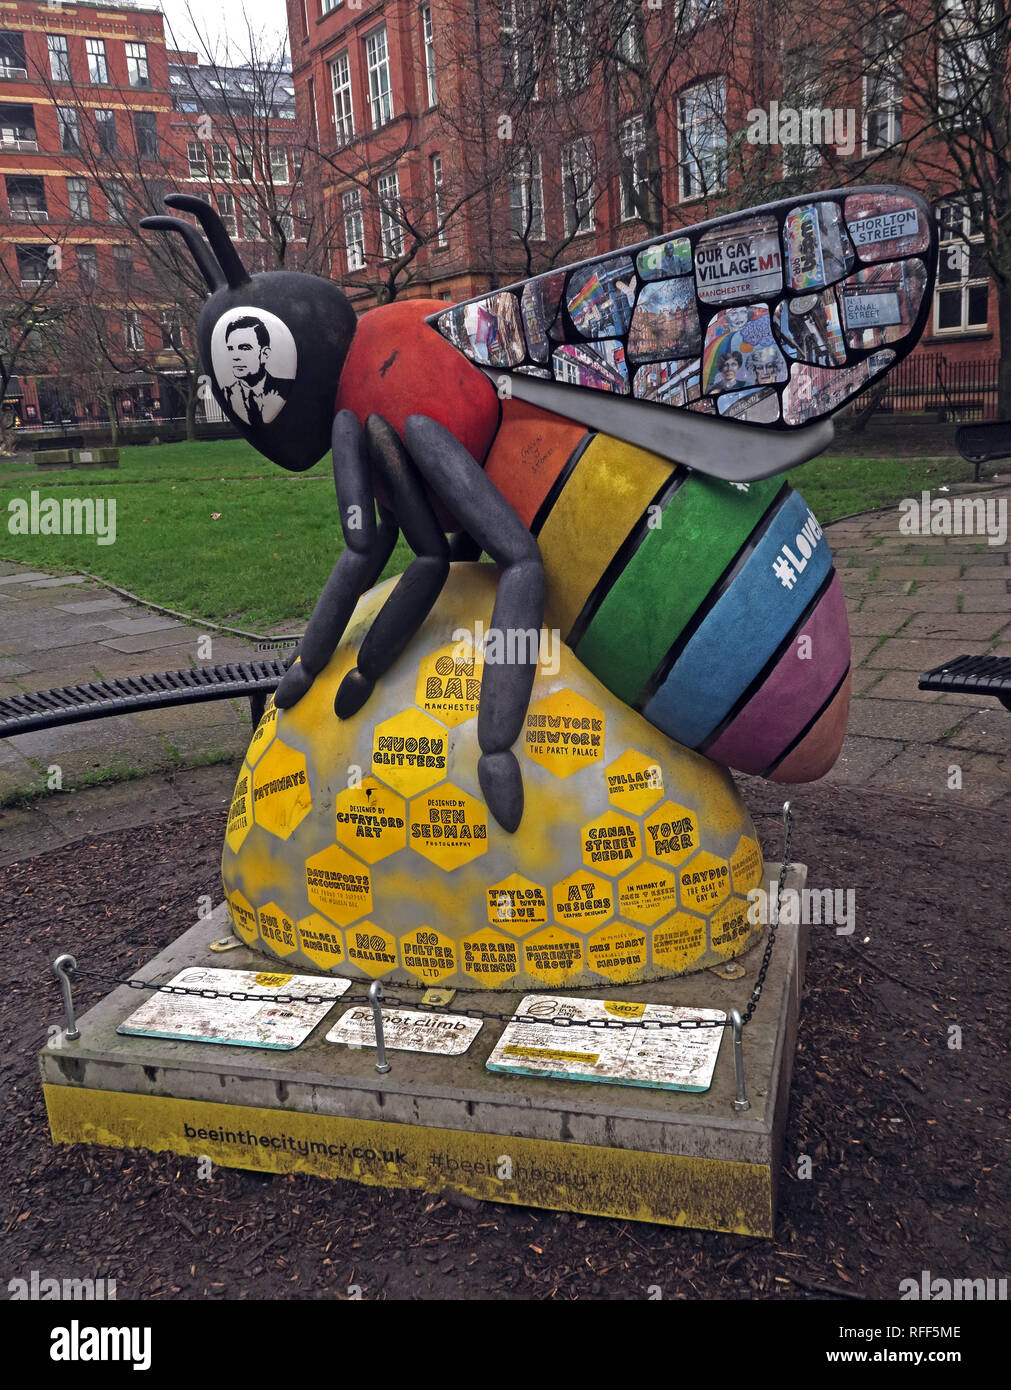 Bee In The City - Sackville Gardens featuring Alan Turing, Gay Village, Canal St, Manchester, Lancashire, England, UK Stock Photo